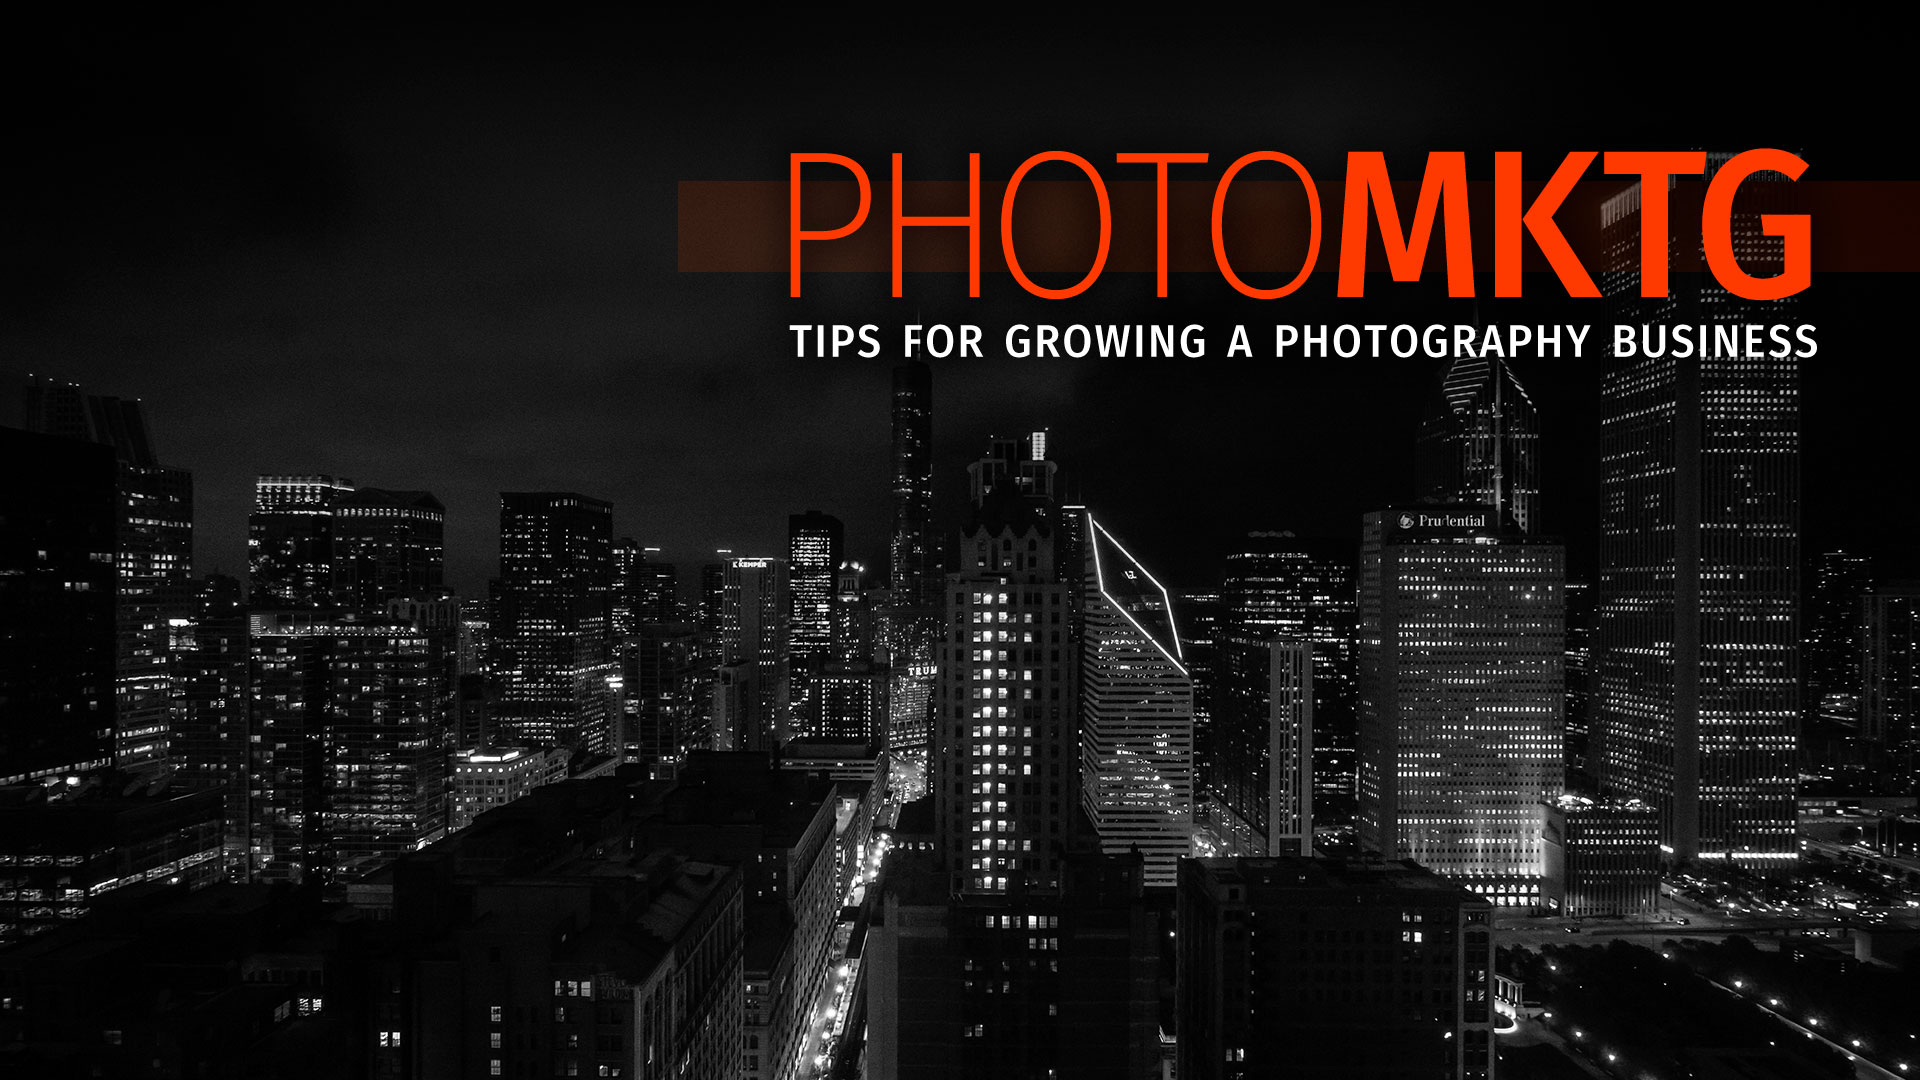 Photography Marketing: The number one thing you need to check on your website | Photofocus